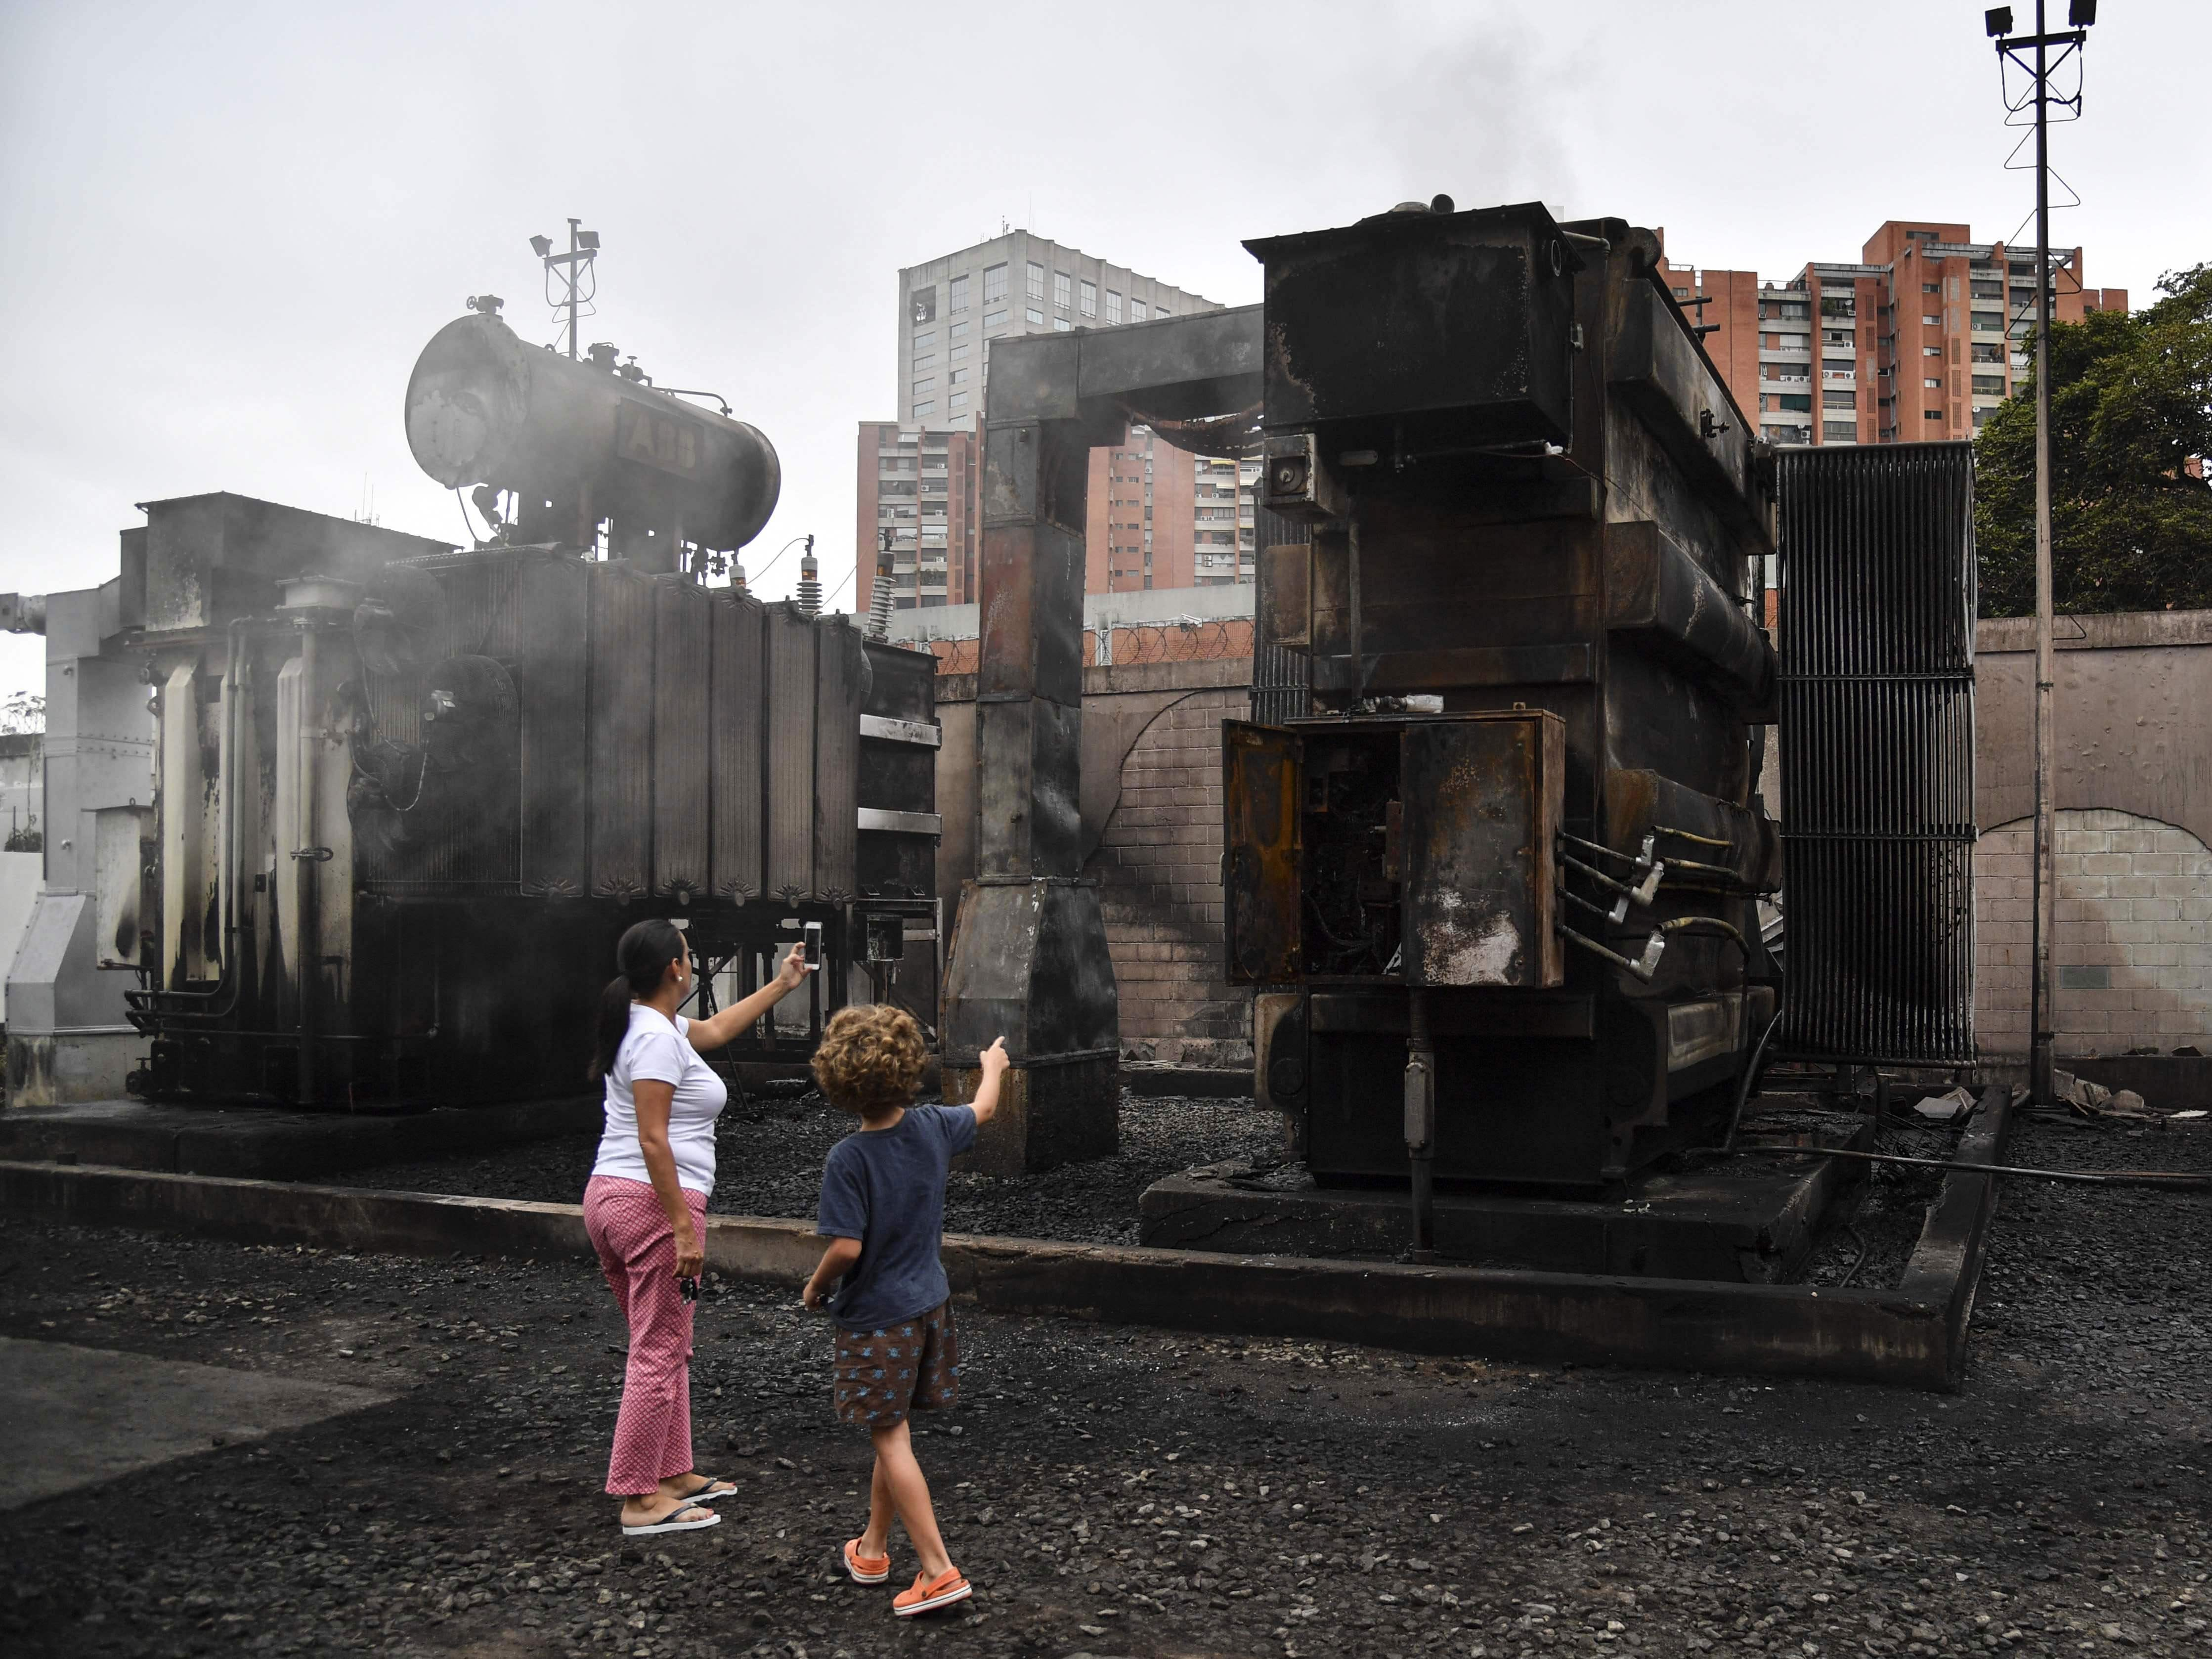 A woman and a child take pictures of a damaged power substation of state owned electricty  company Corpoelec in Caracas where explosions of unknown cause took place early on March 11, 2019, as a massive power outage continues affecting some areas of the country.